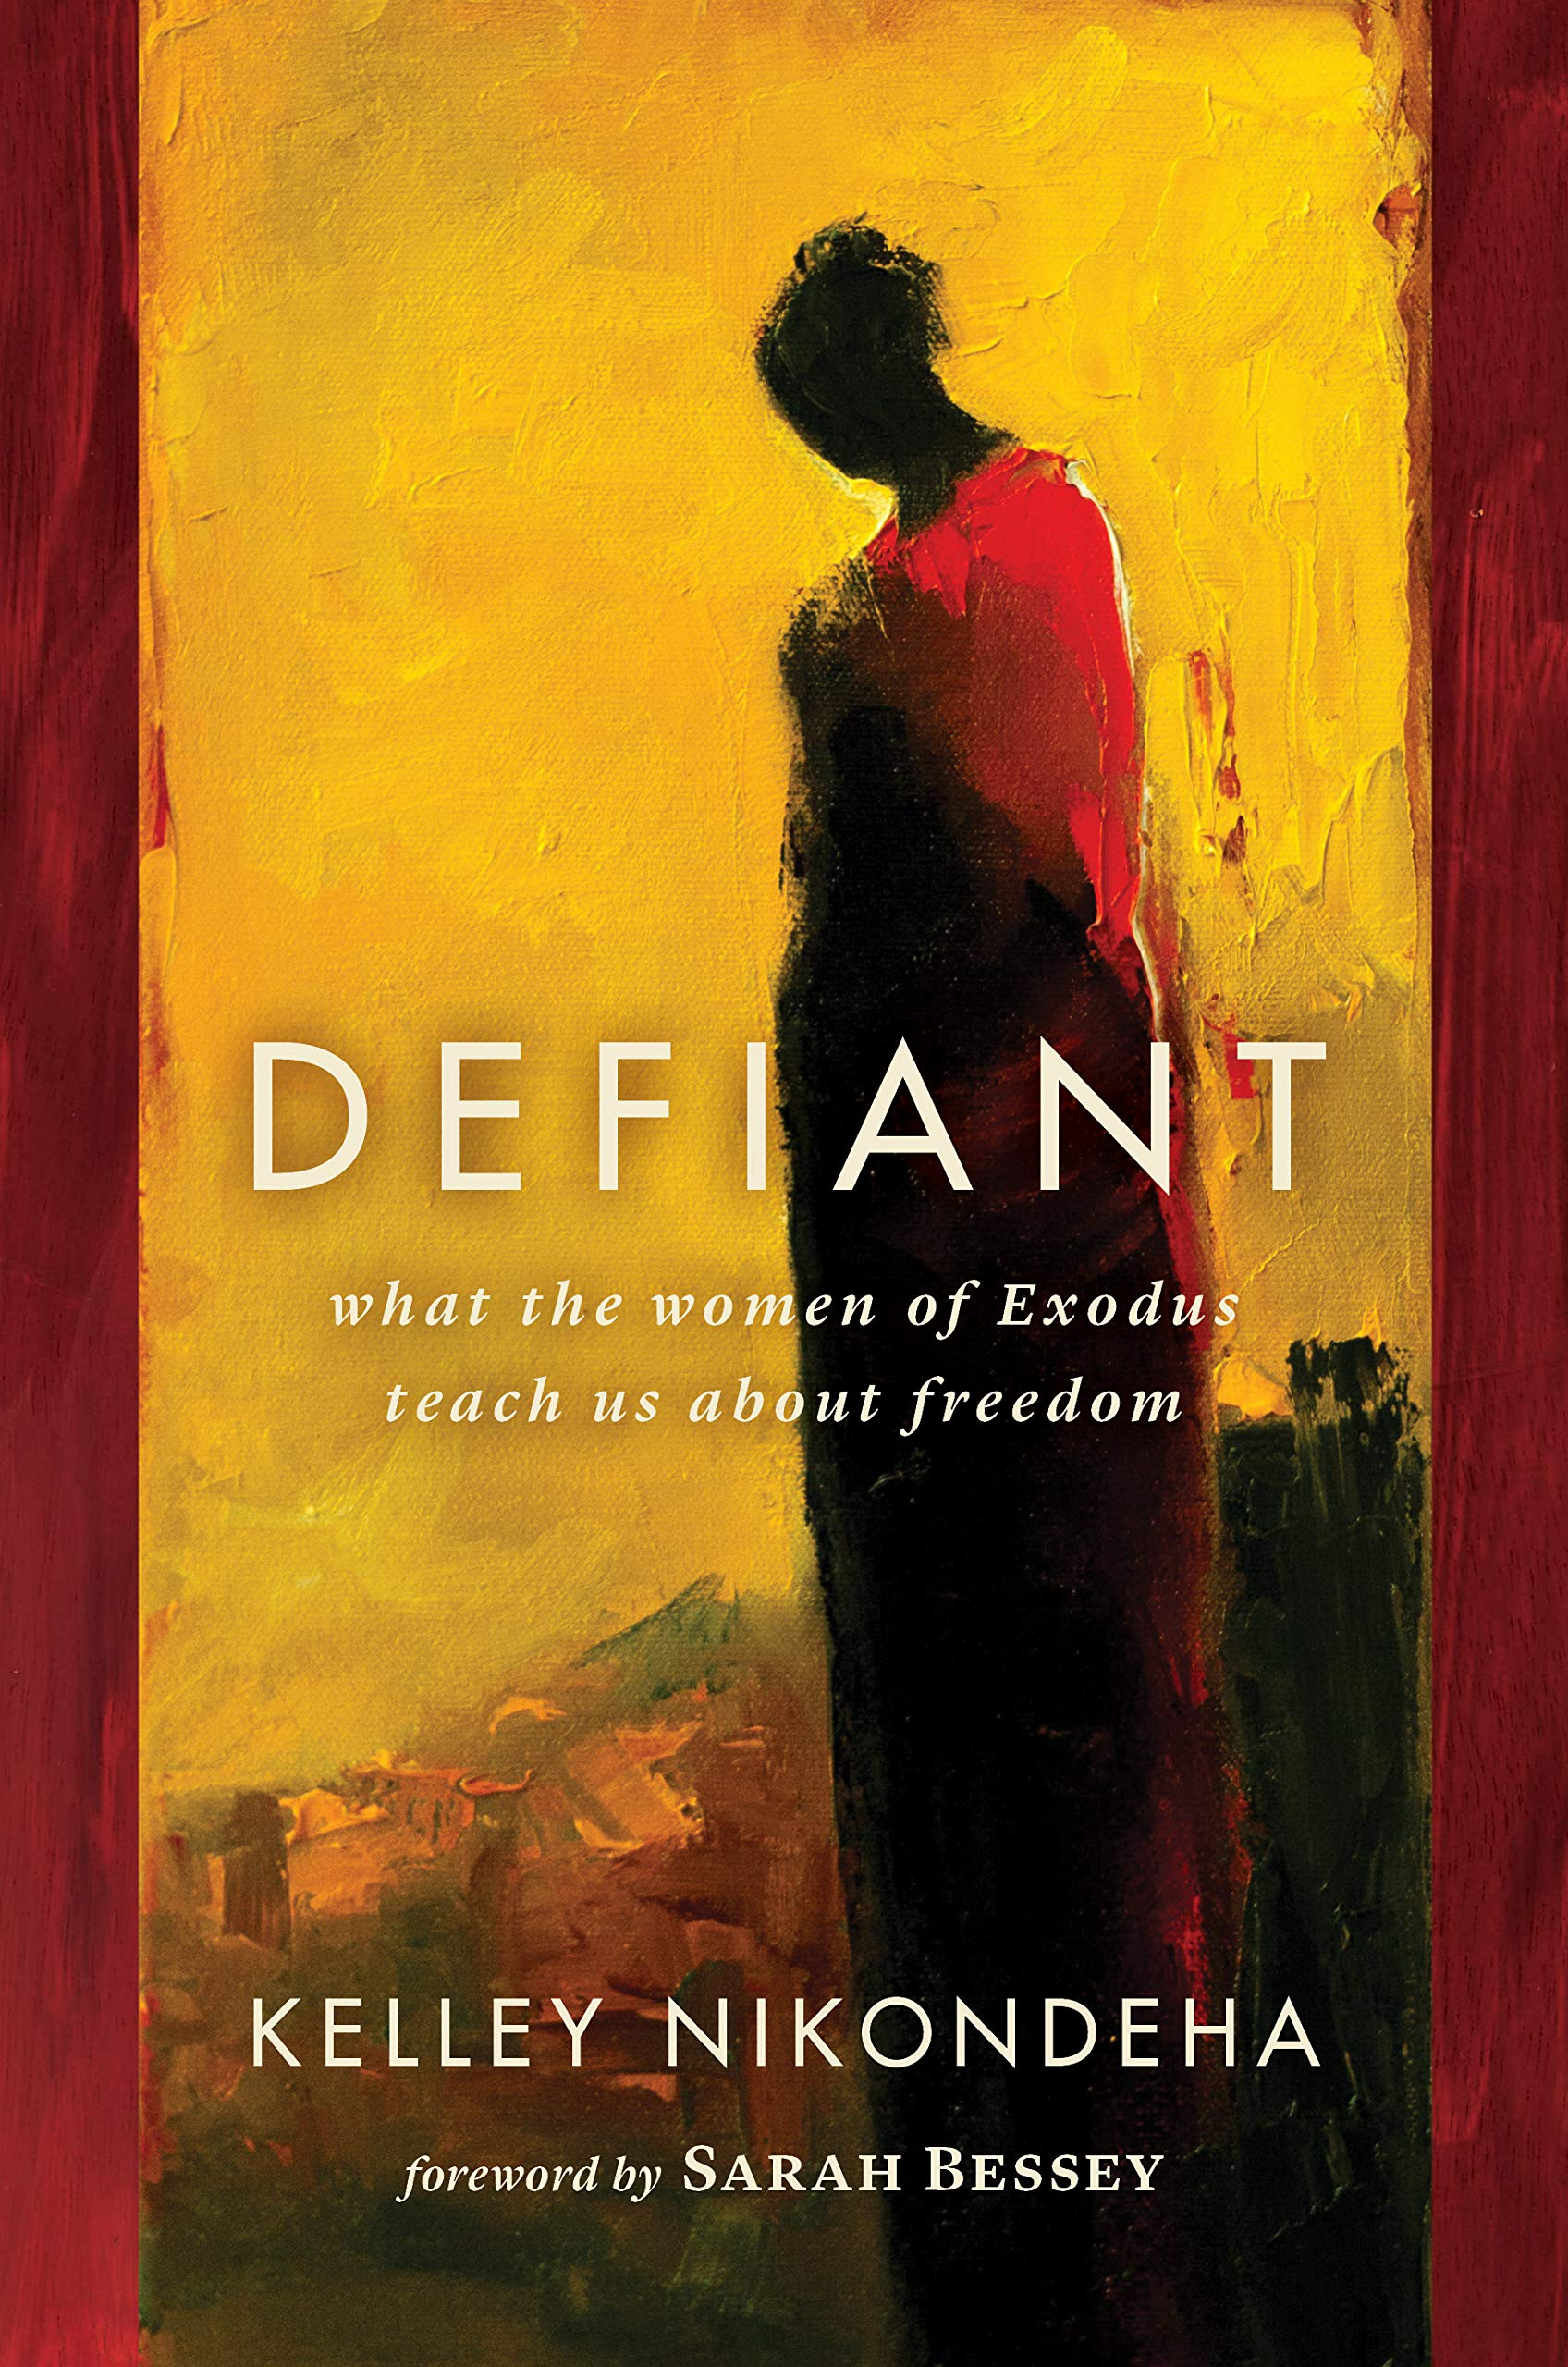 Defiant: What the Women of Exodus Teach Us about Freedom: Nikondeha,  Kelley, Bessey, Sarah: 9780802864291: Amazon.com: Books